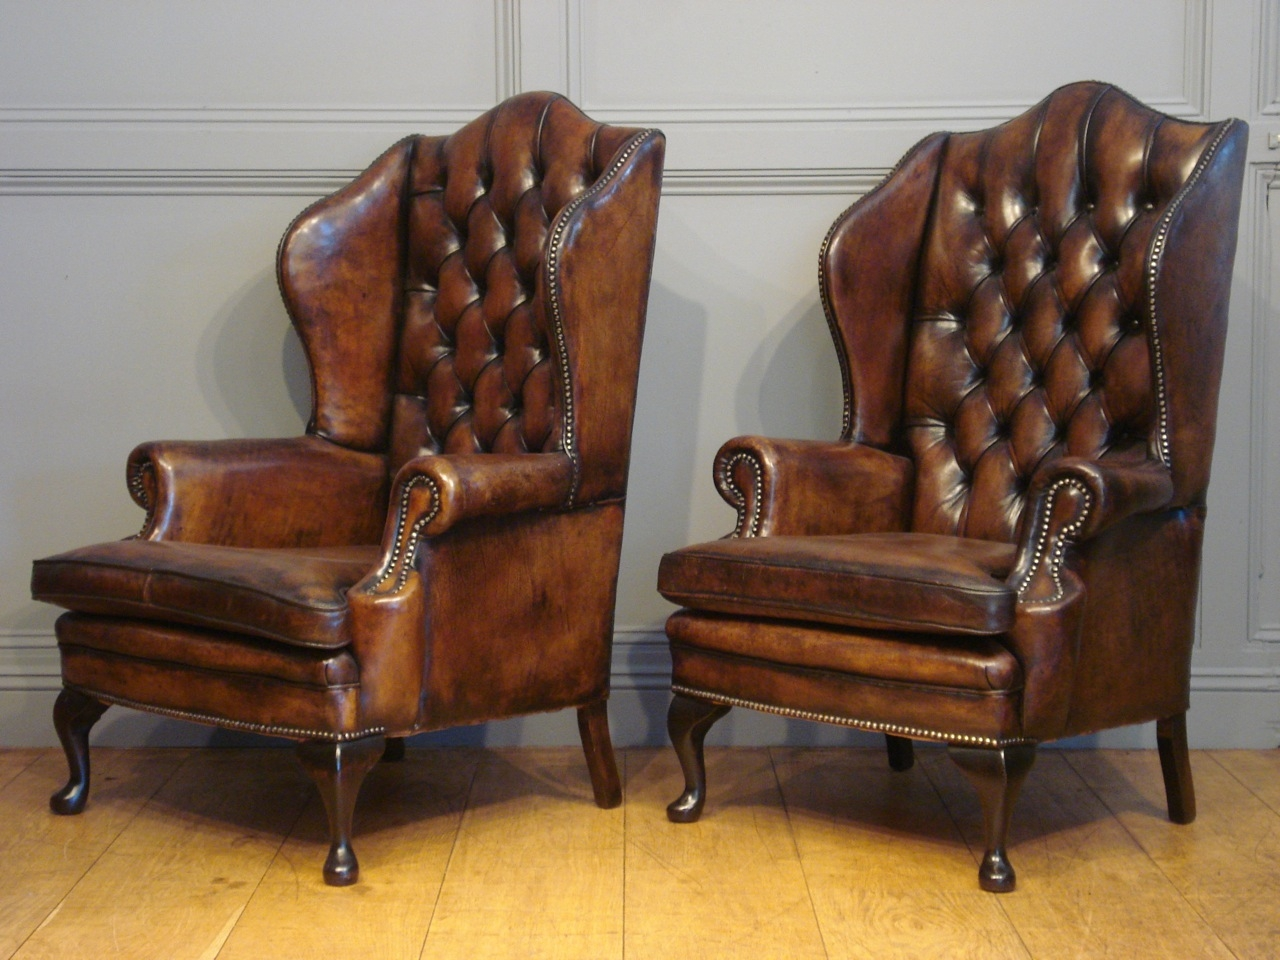 Winged Leather Armchair With Regard To Vintage Leather Armchairs (Image 15 of 15)